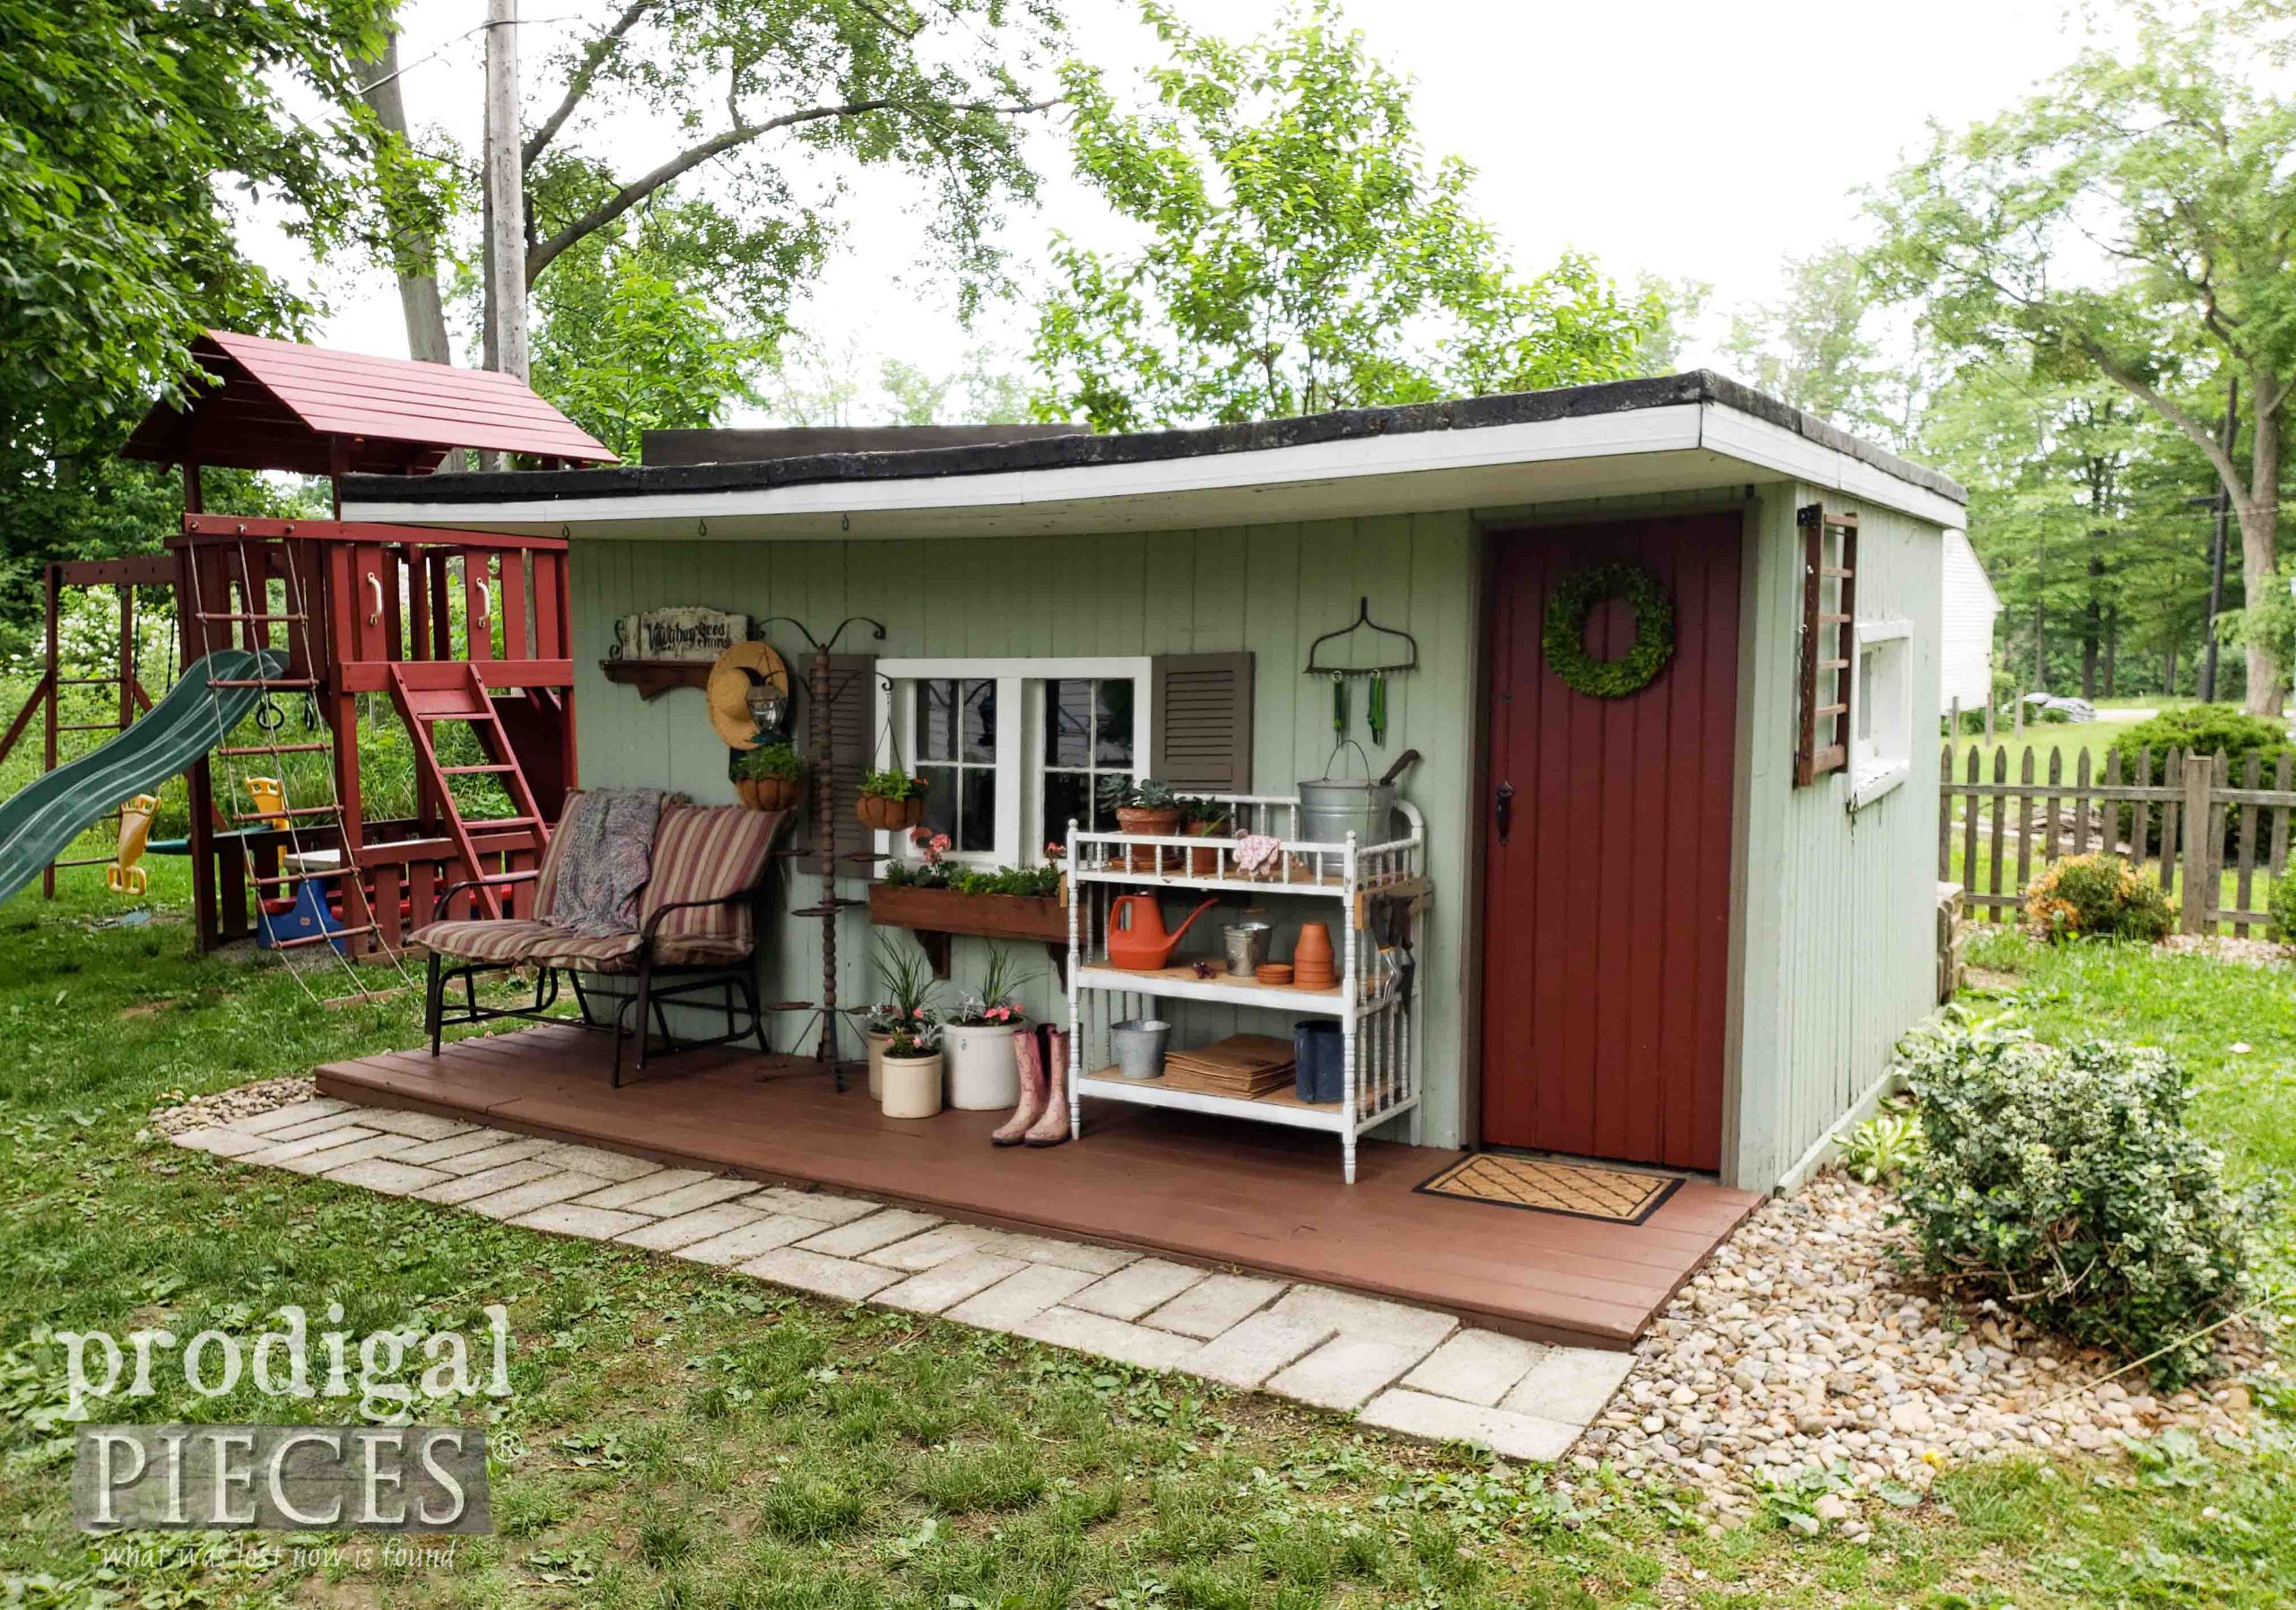 Backyard Garden Shed Before Remodel by Prodigal Pieces | prodigalpieces.com #prodigalpieces #diy #home #garden